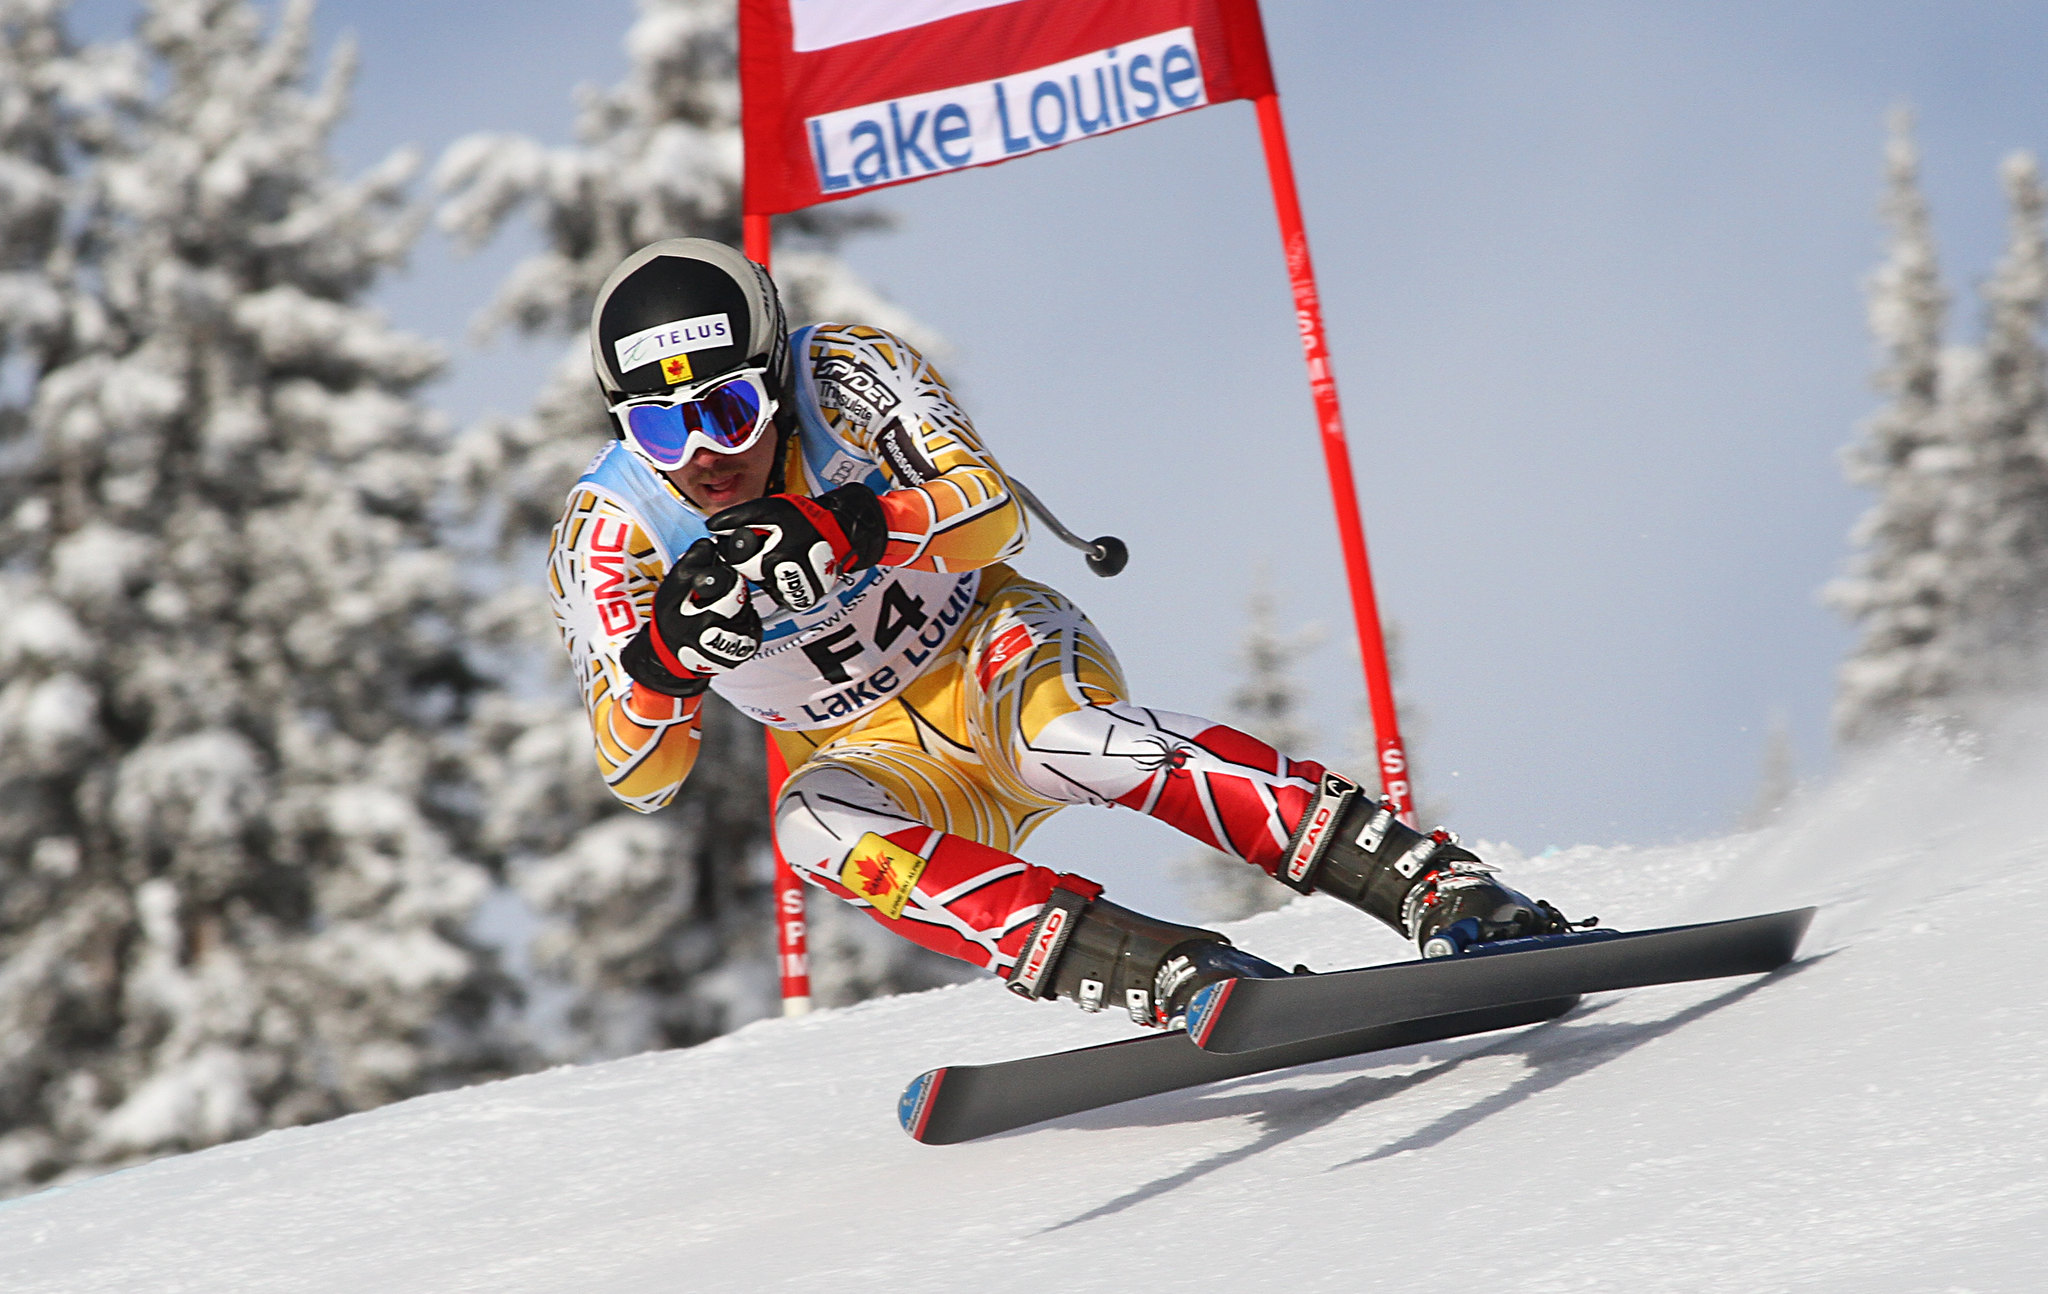 Robin Femy skis as a forerunner in the downhill in Lake Louise, Alta.